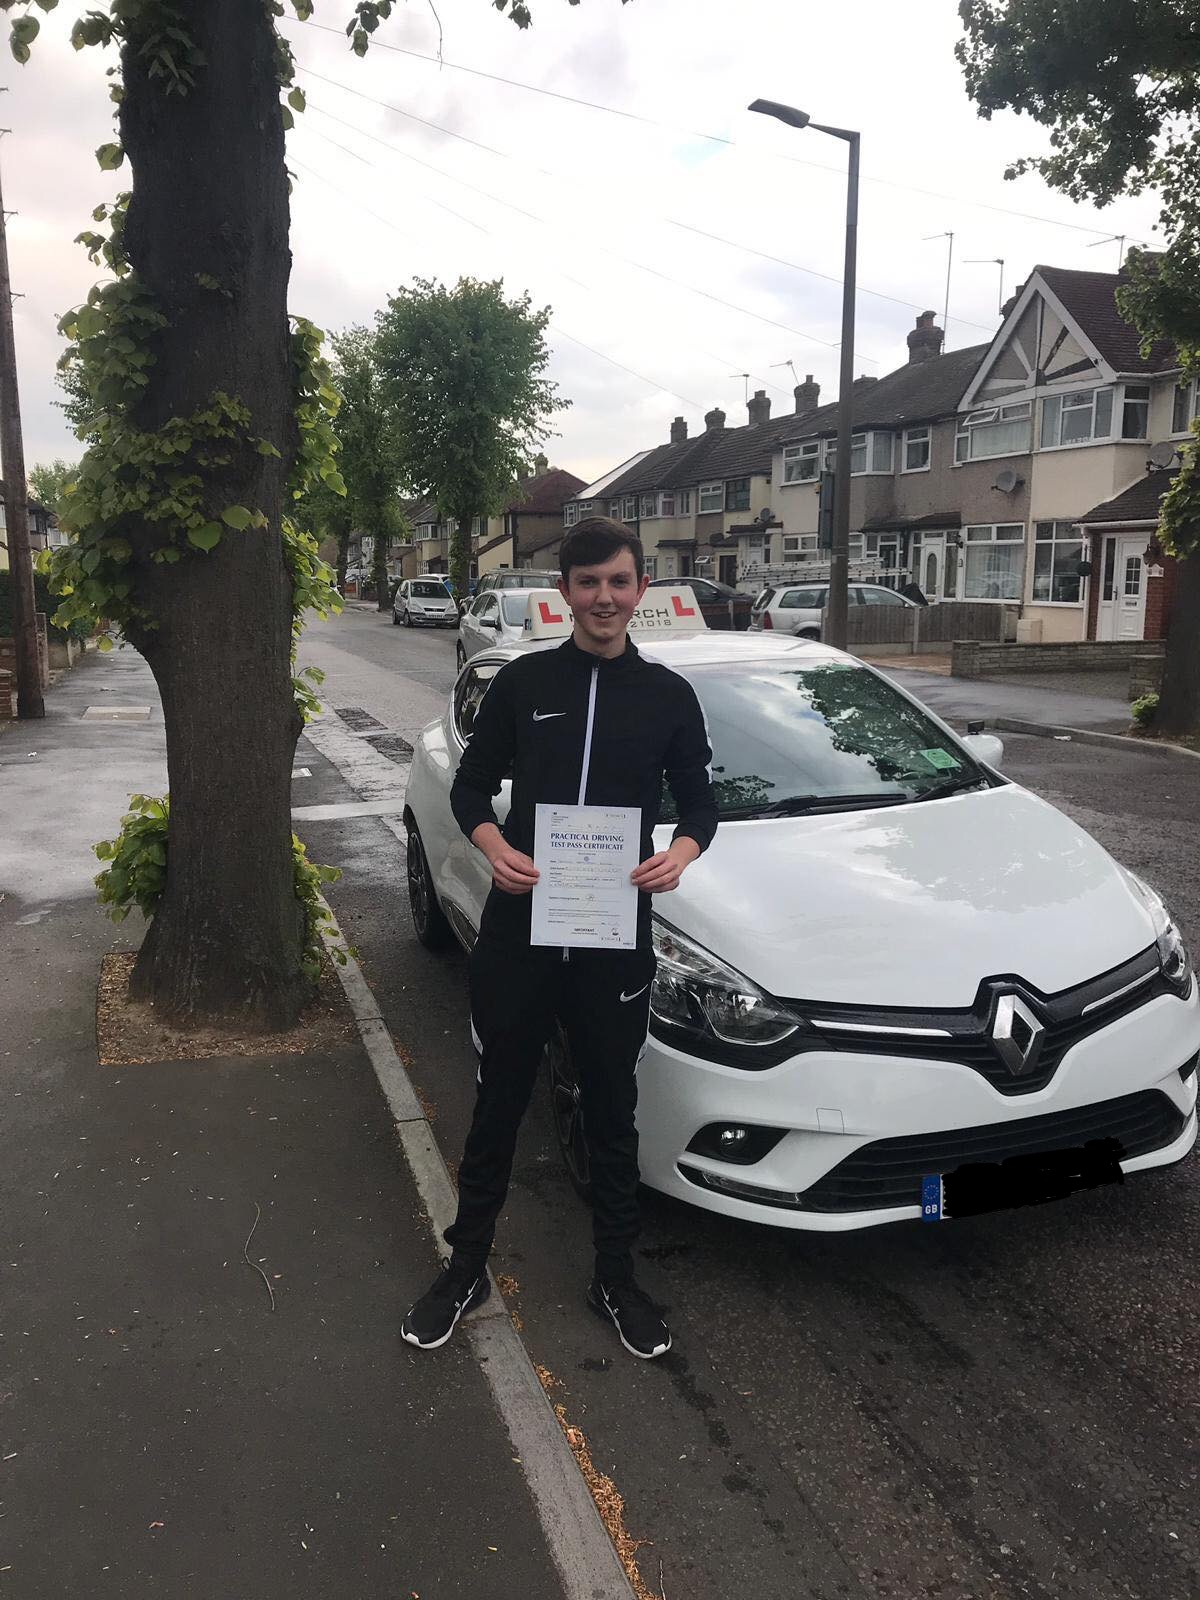 Pupil passed at Hornchurch driving test centre